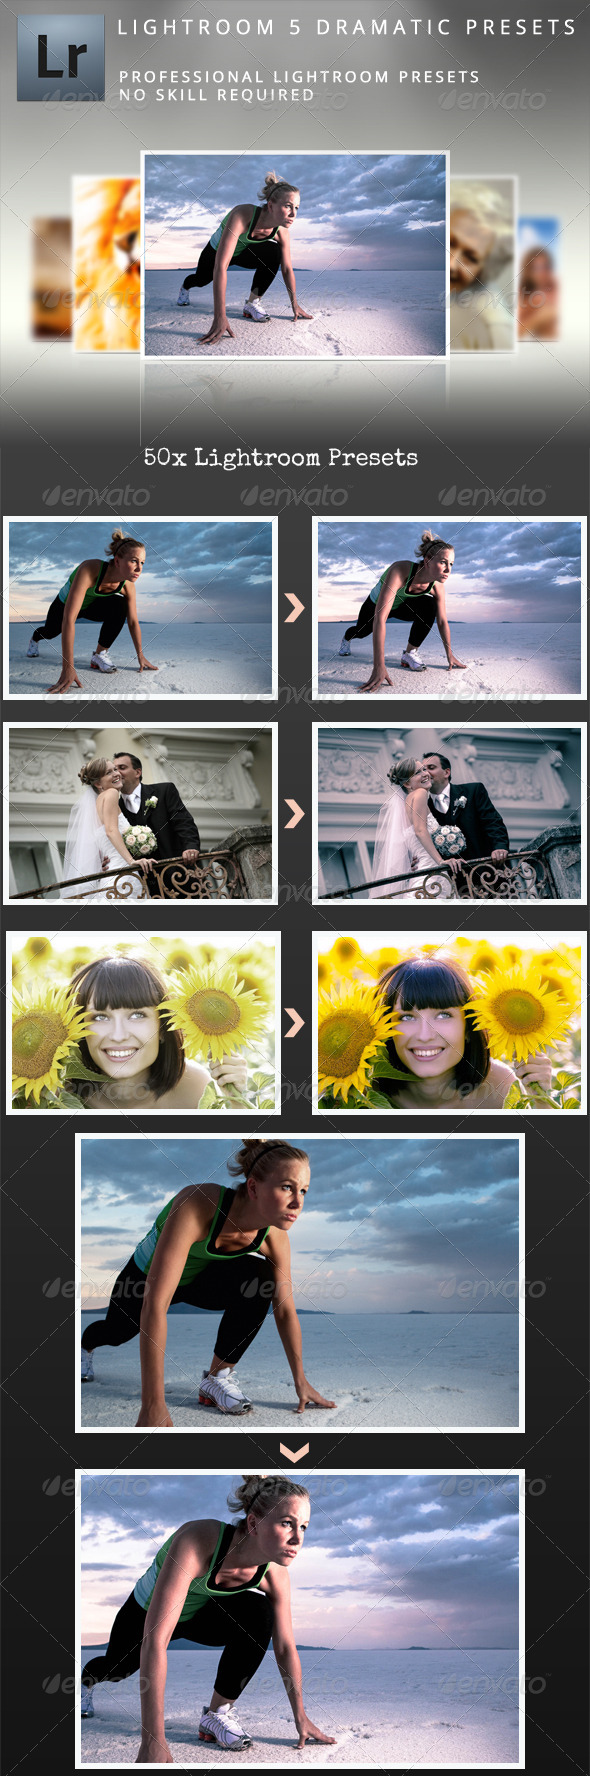 Lightroom 5 Dramatic Presets - Lightroom Presets Add-ons